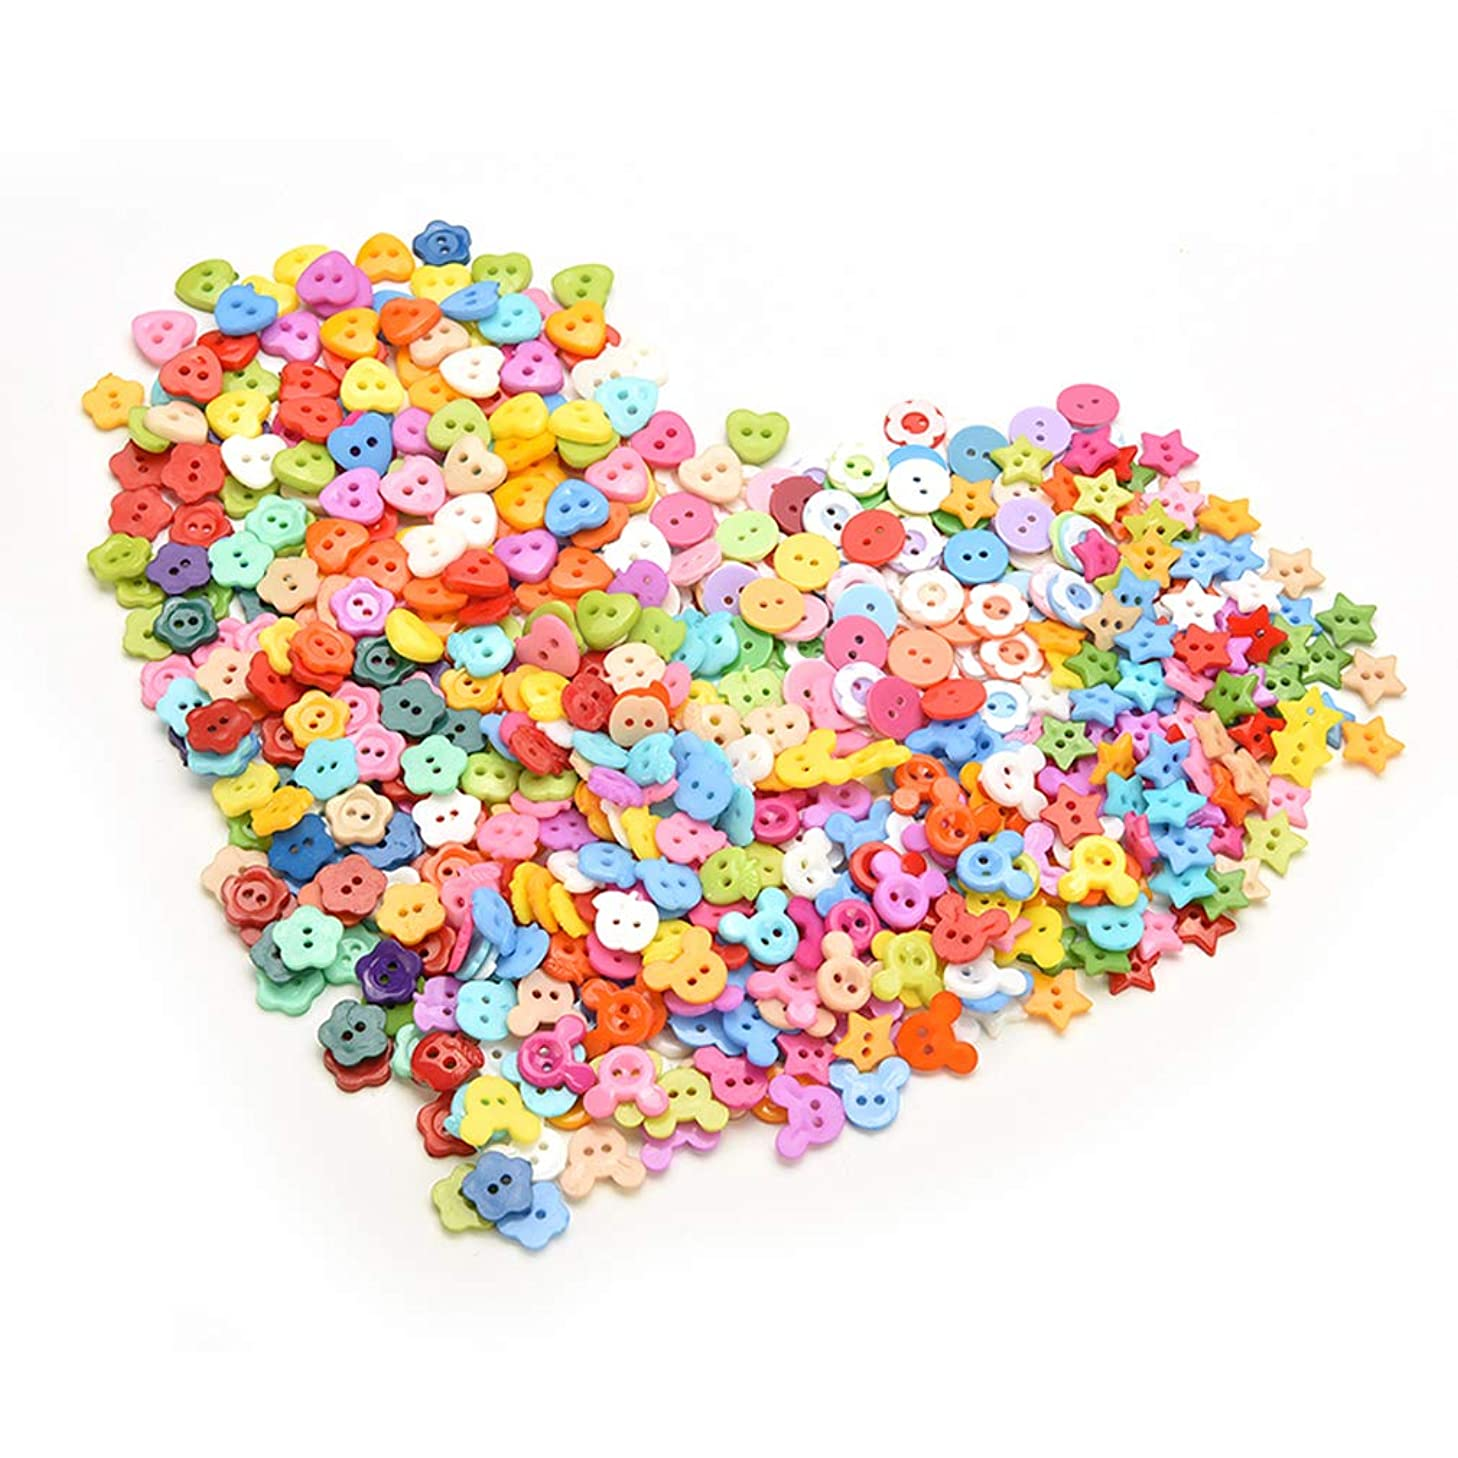 Welecom 1000Pcs Flower Craft Buttons Favorite Findings Basic Button Christmas Mixed Colors Size Bulk Buttons,2 and 4 Holes Round Resin Sewing Scrapbook Buttons for DIY Art&Crafts Projects